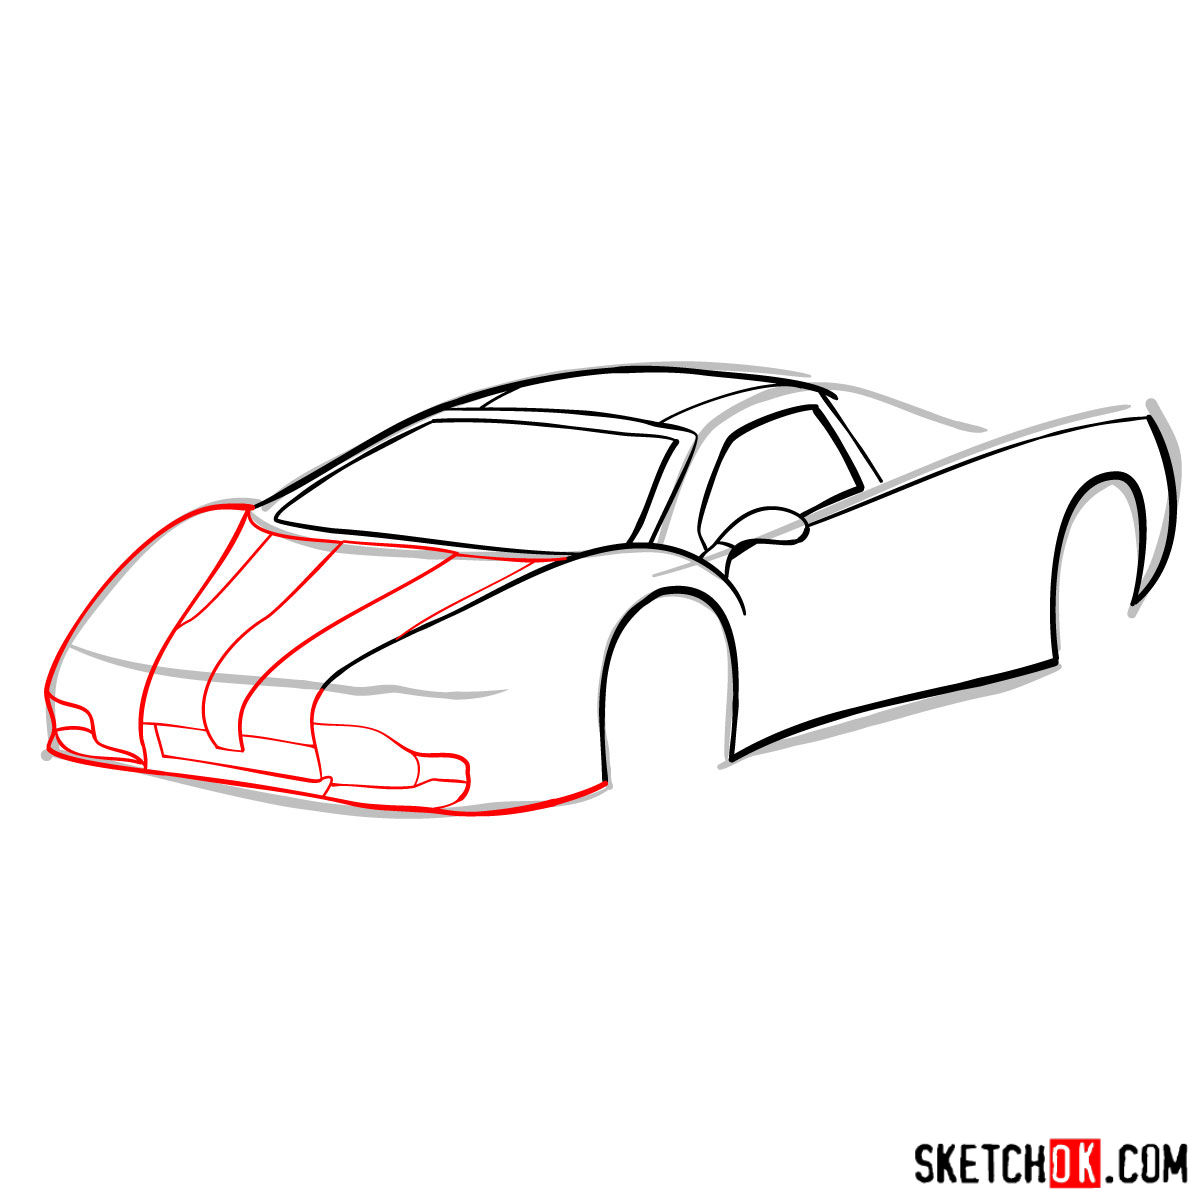 How to draw SSC Ultimate Aero TT 2006 - step 05